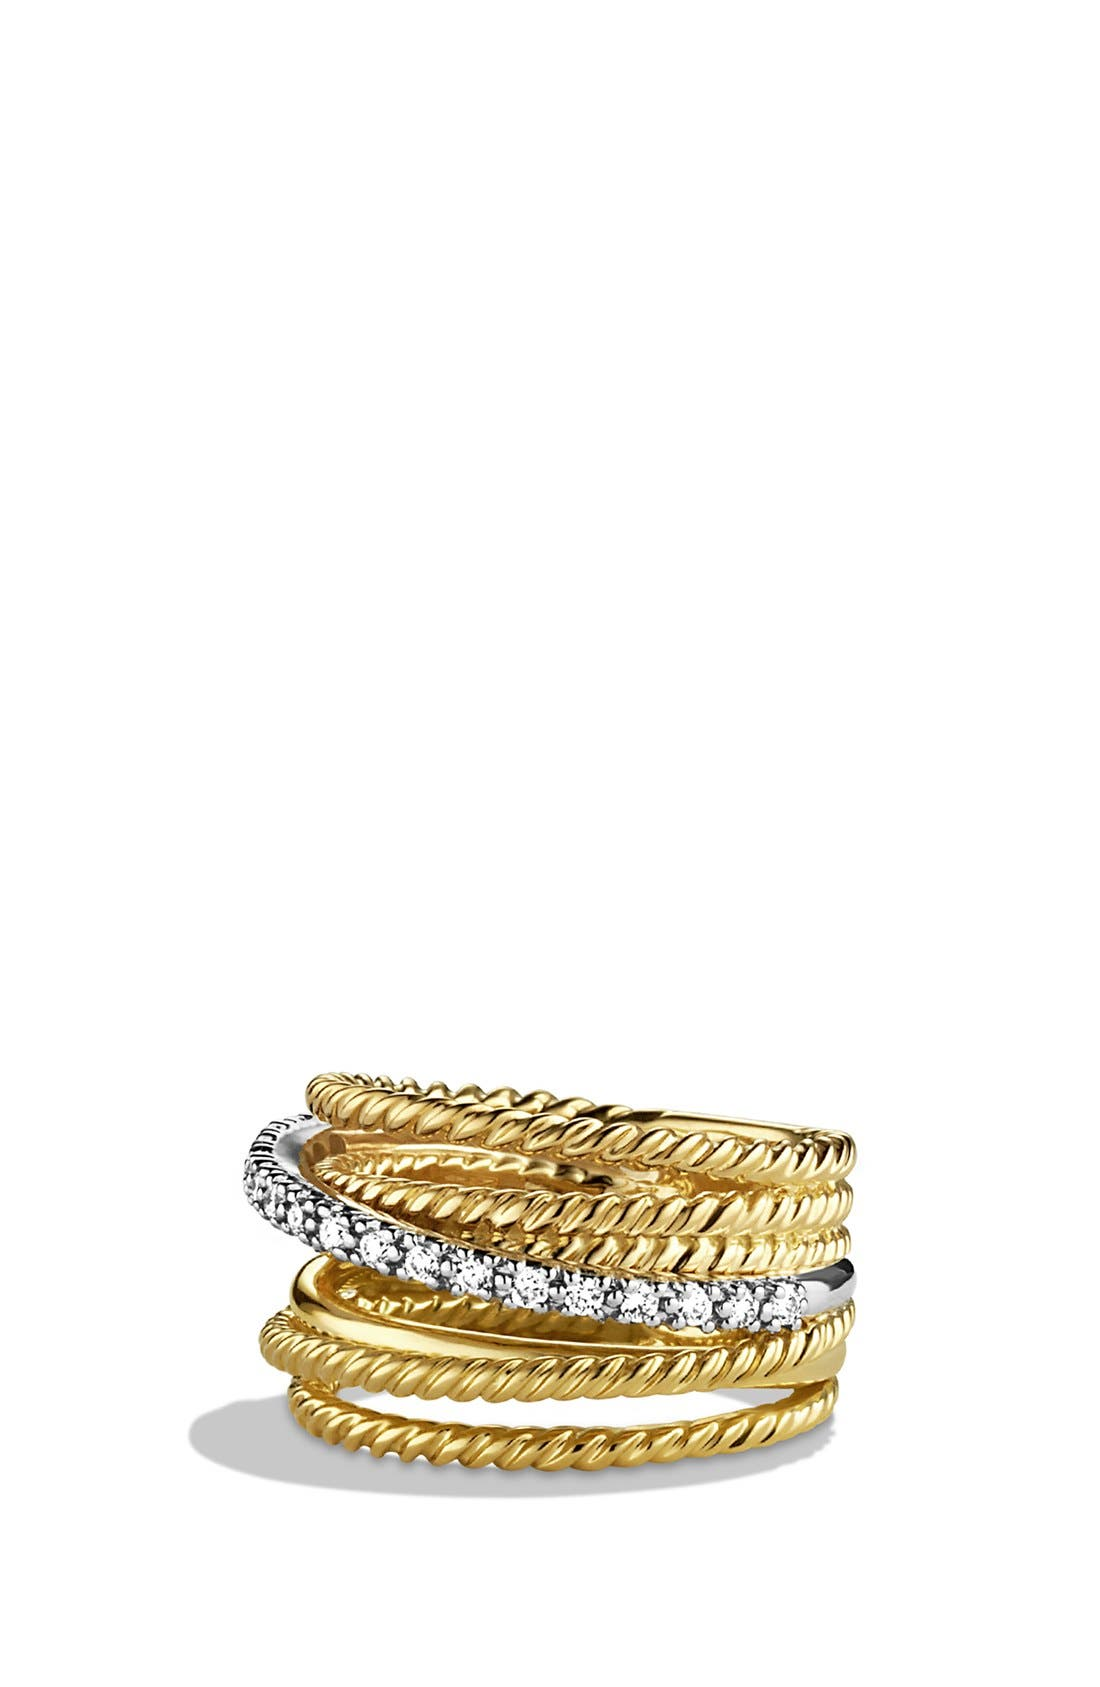 Main Image - David Yurman 'DY Crossover' Ring with Diamonds in Gold